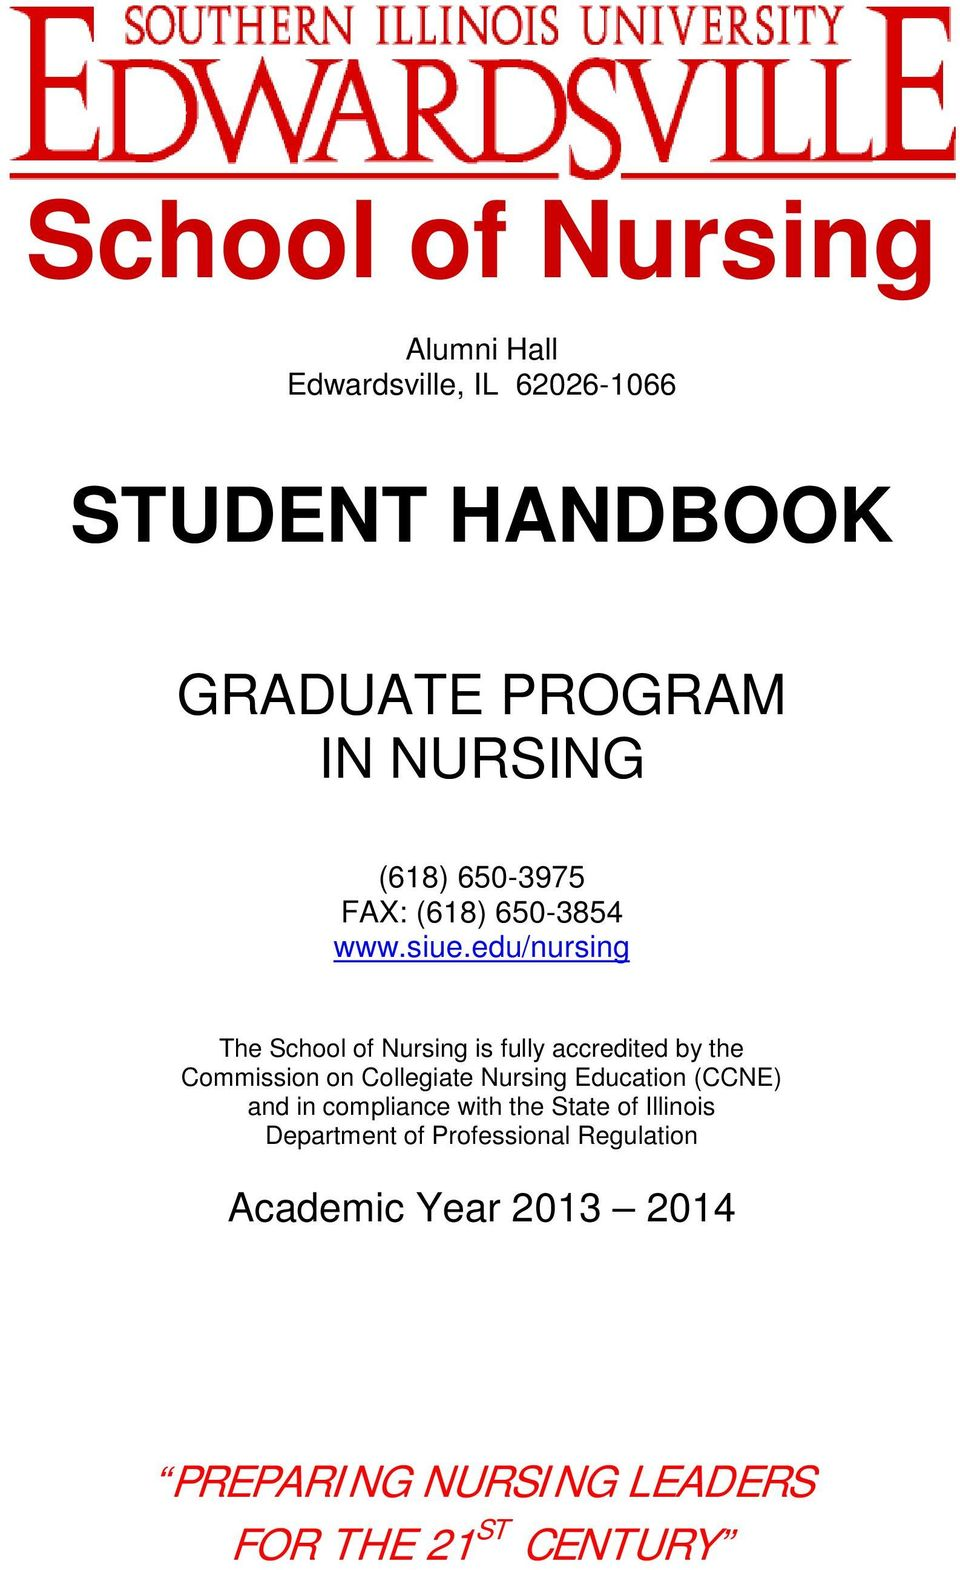 edu/nursing The School of Nursing is fully accredited by the Commission on Collegiate Nursing